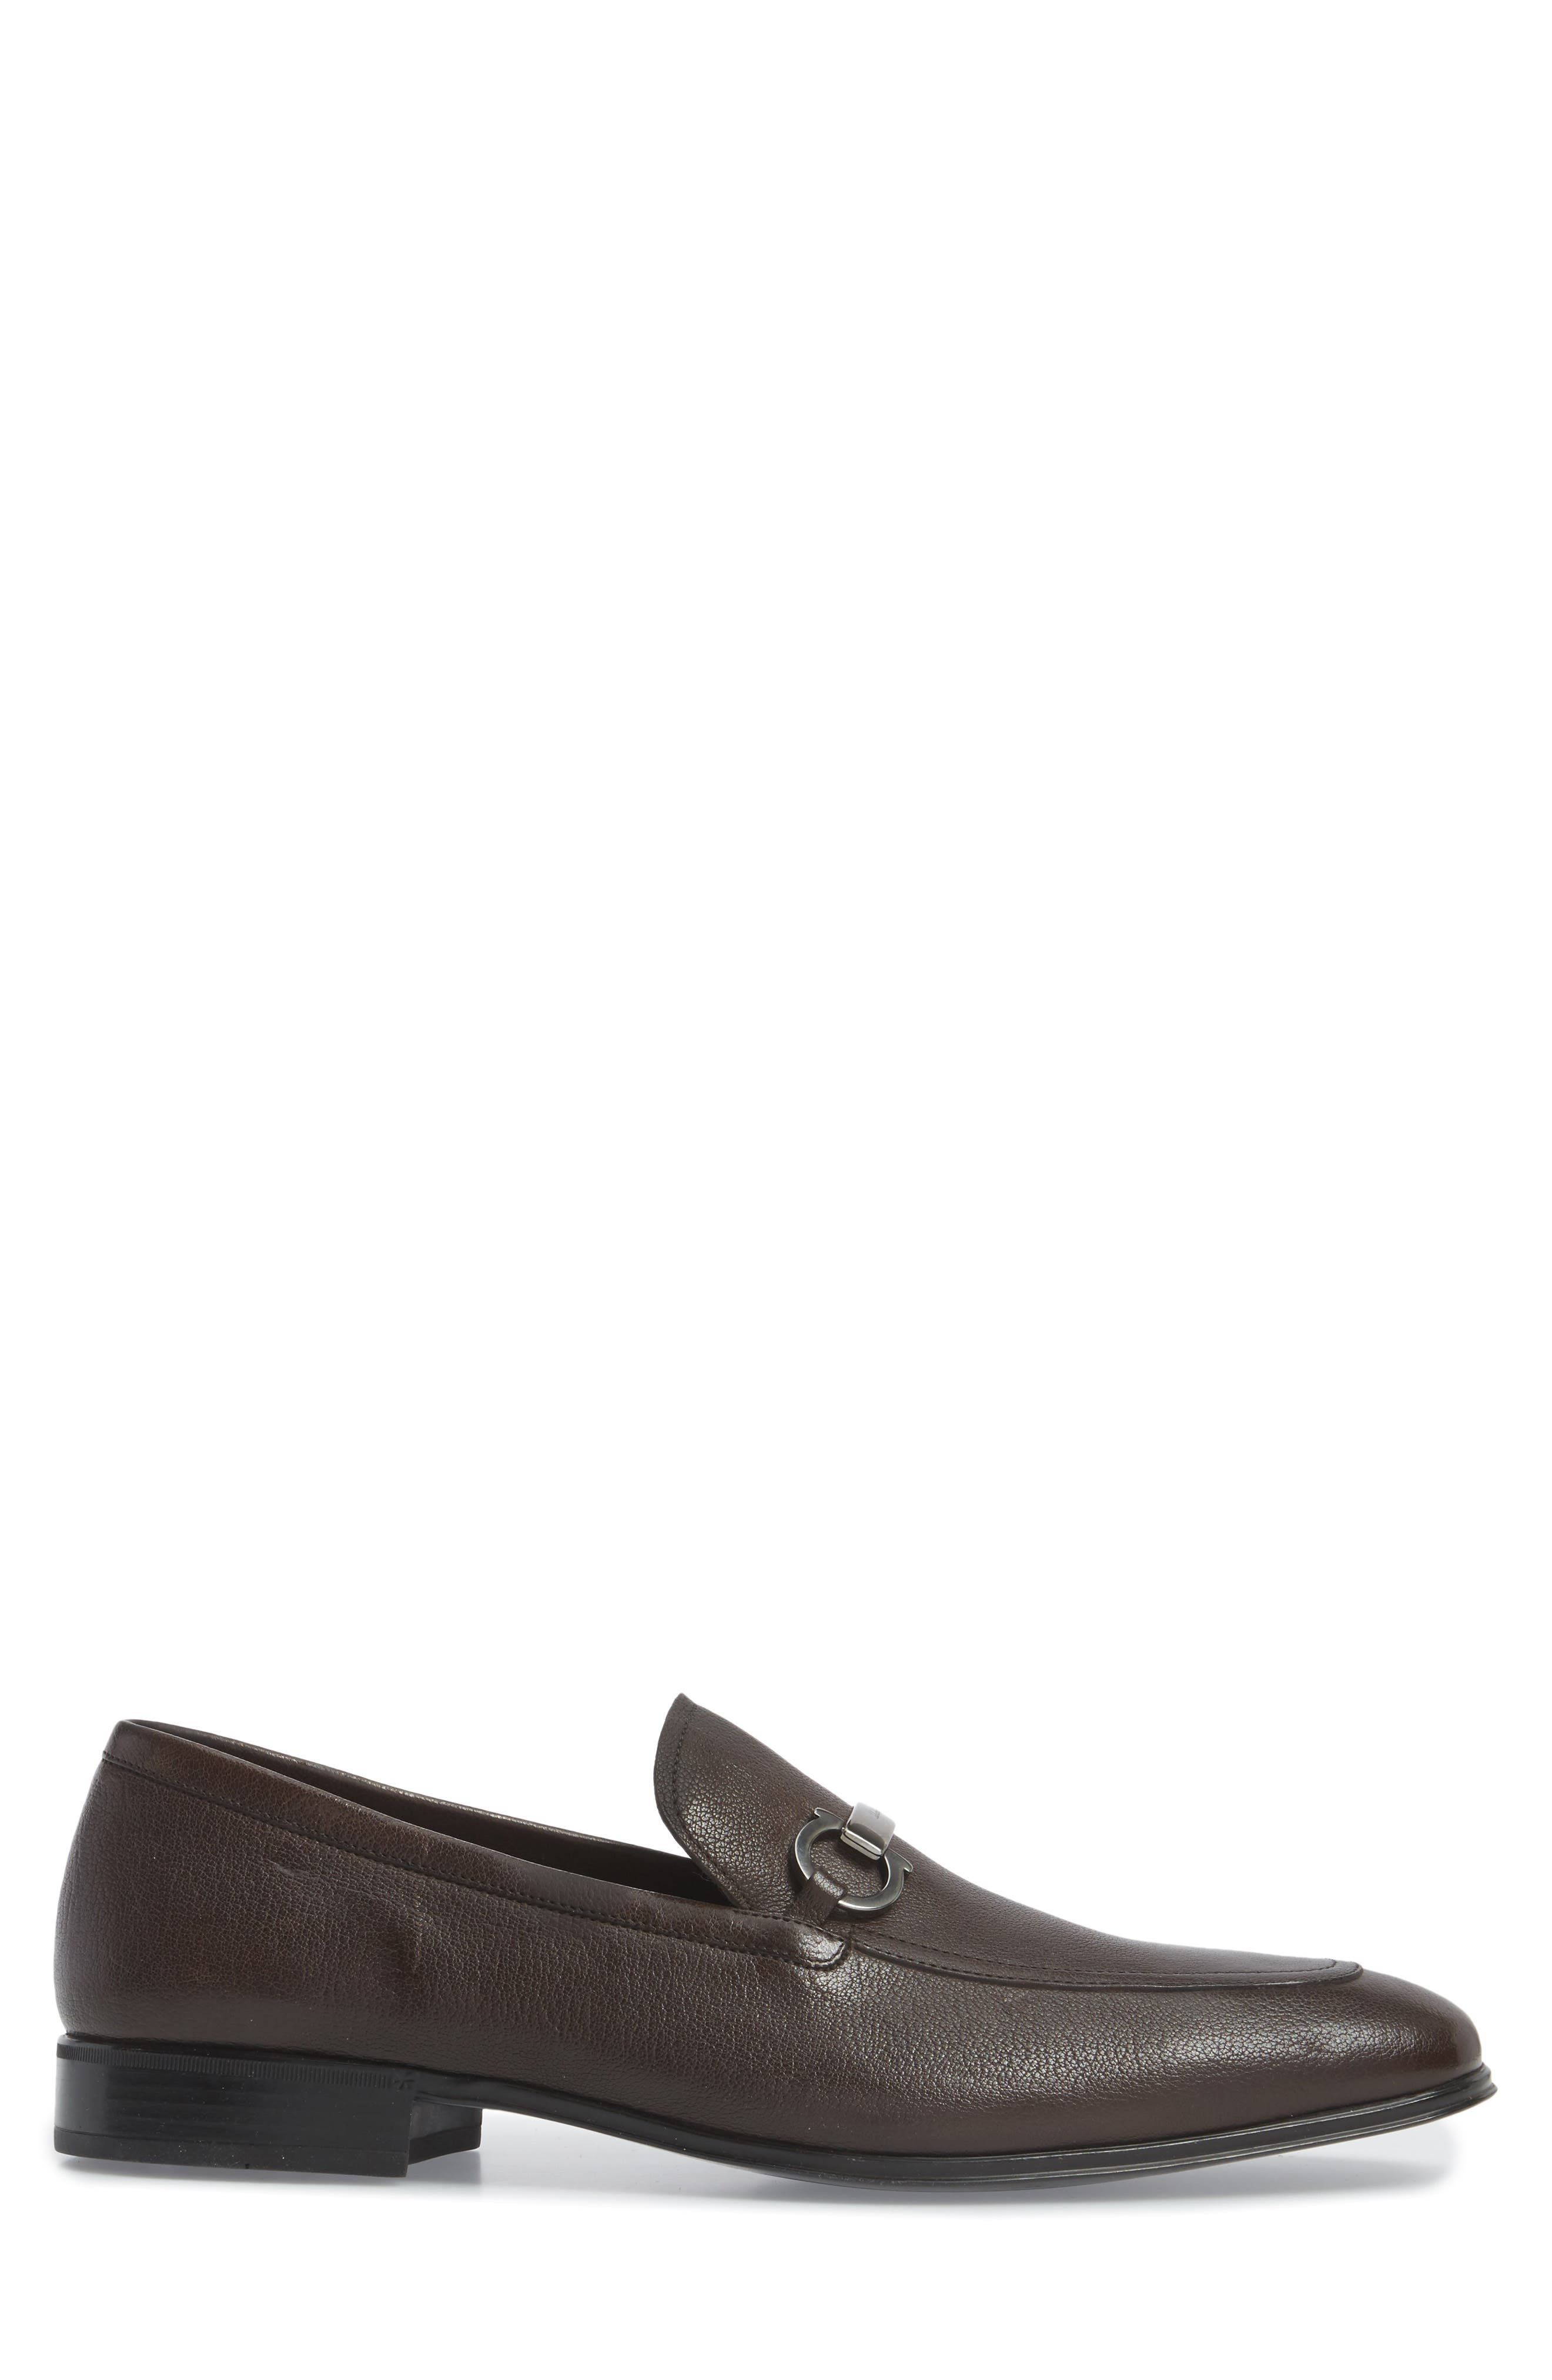 Borges Apron Toe Loafer,                             Alternate thumbnail 3, color,                             Brown Leather